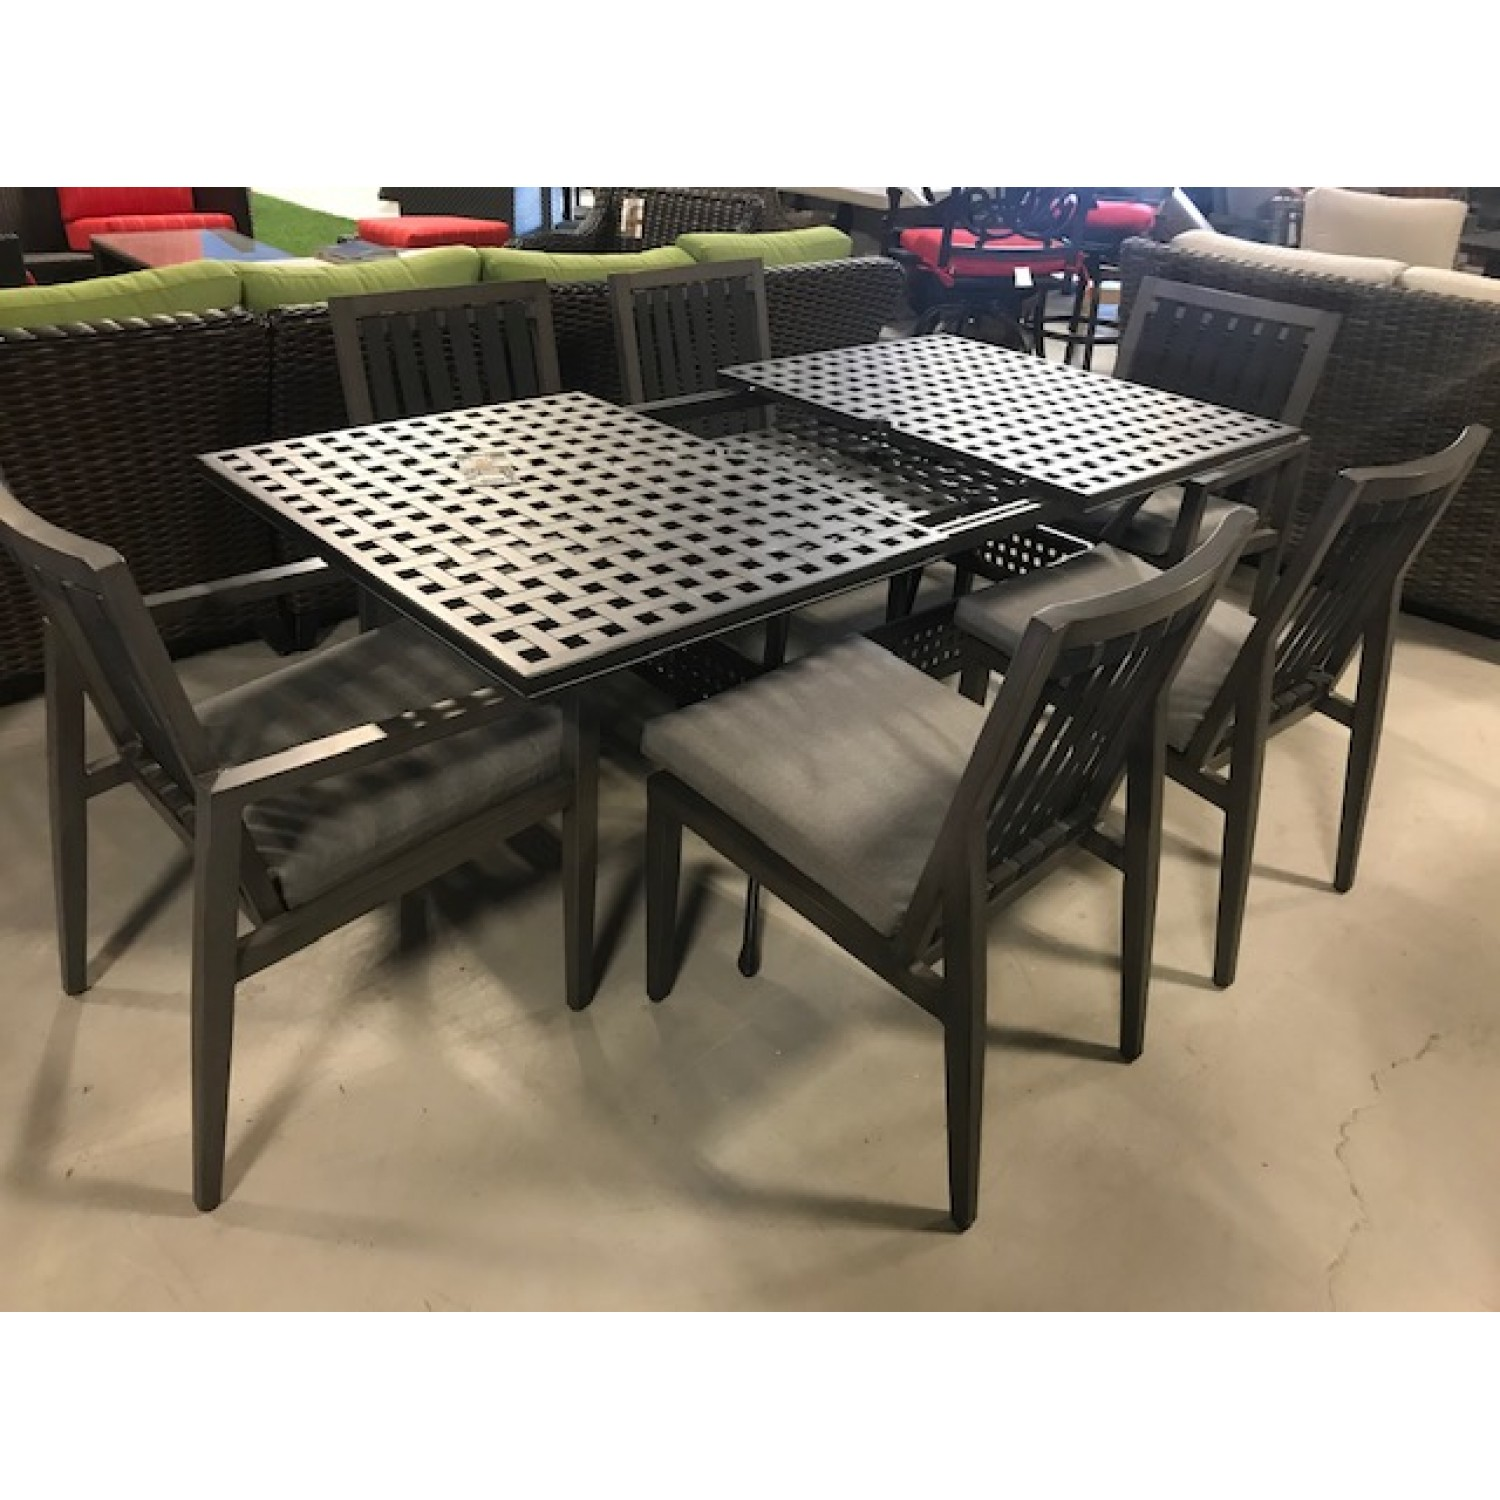 Studio Outdoor Dining Set